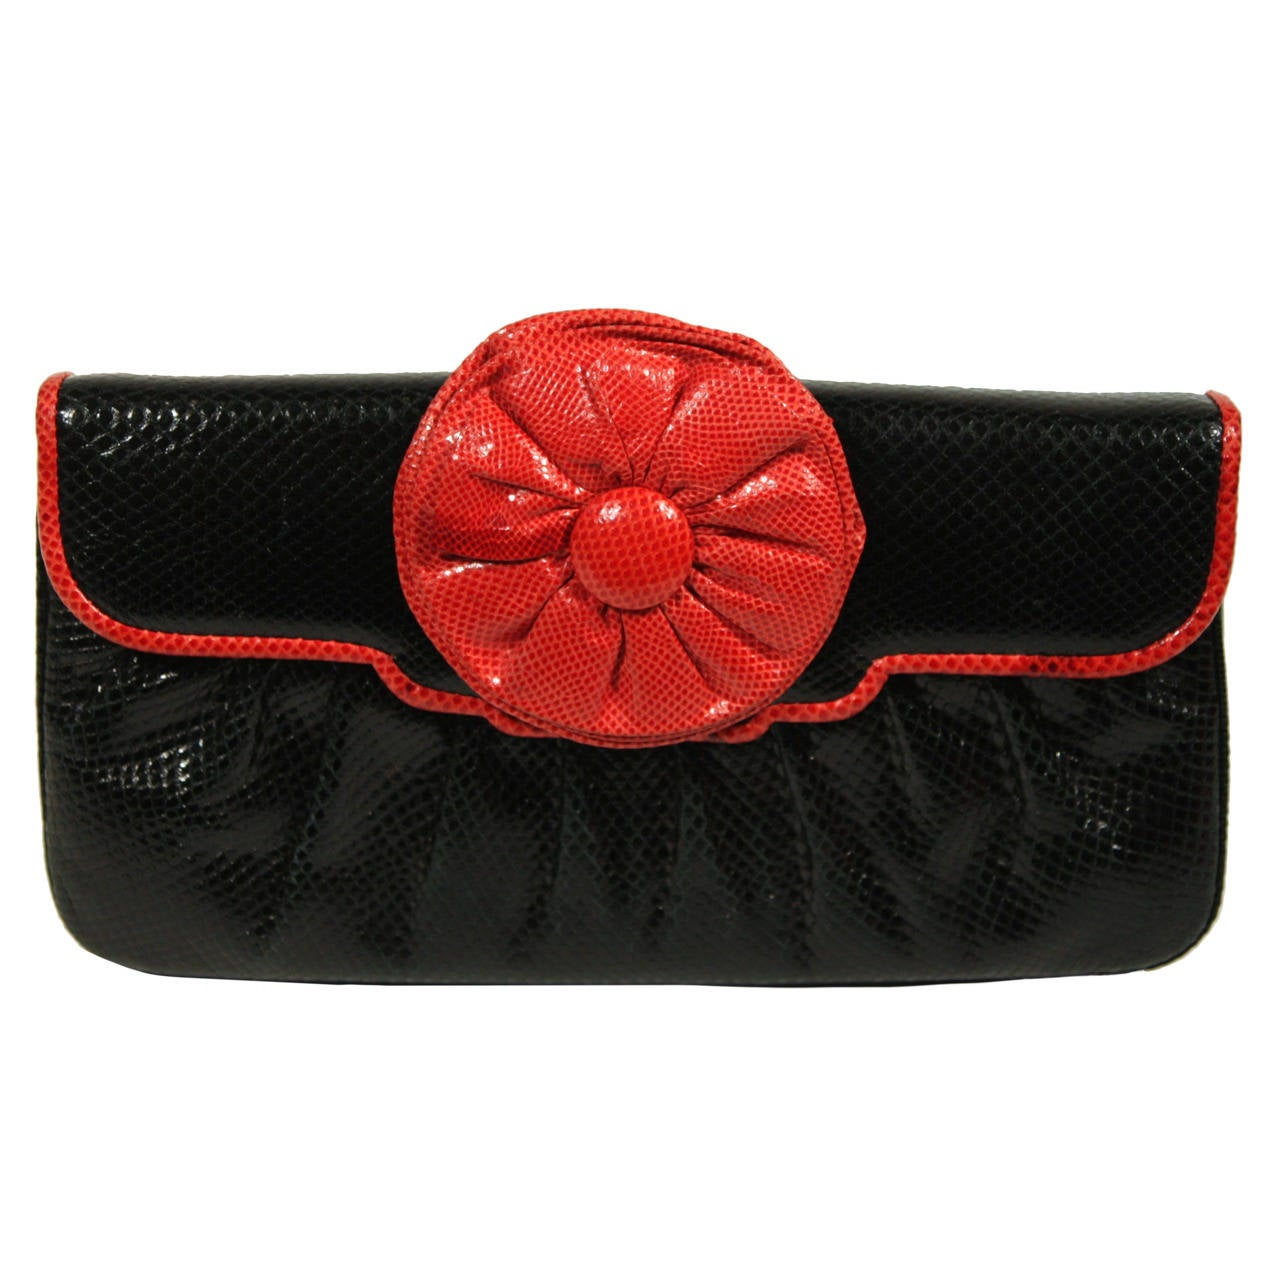 Judith Leiber Black and Red Snakeskin Clutch 1